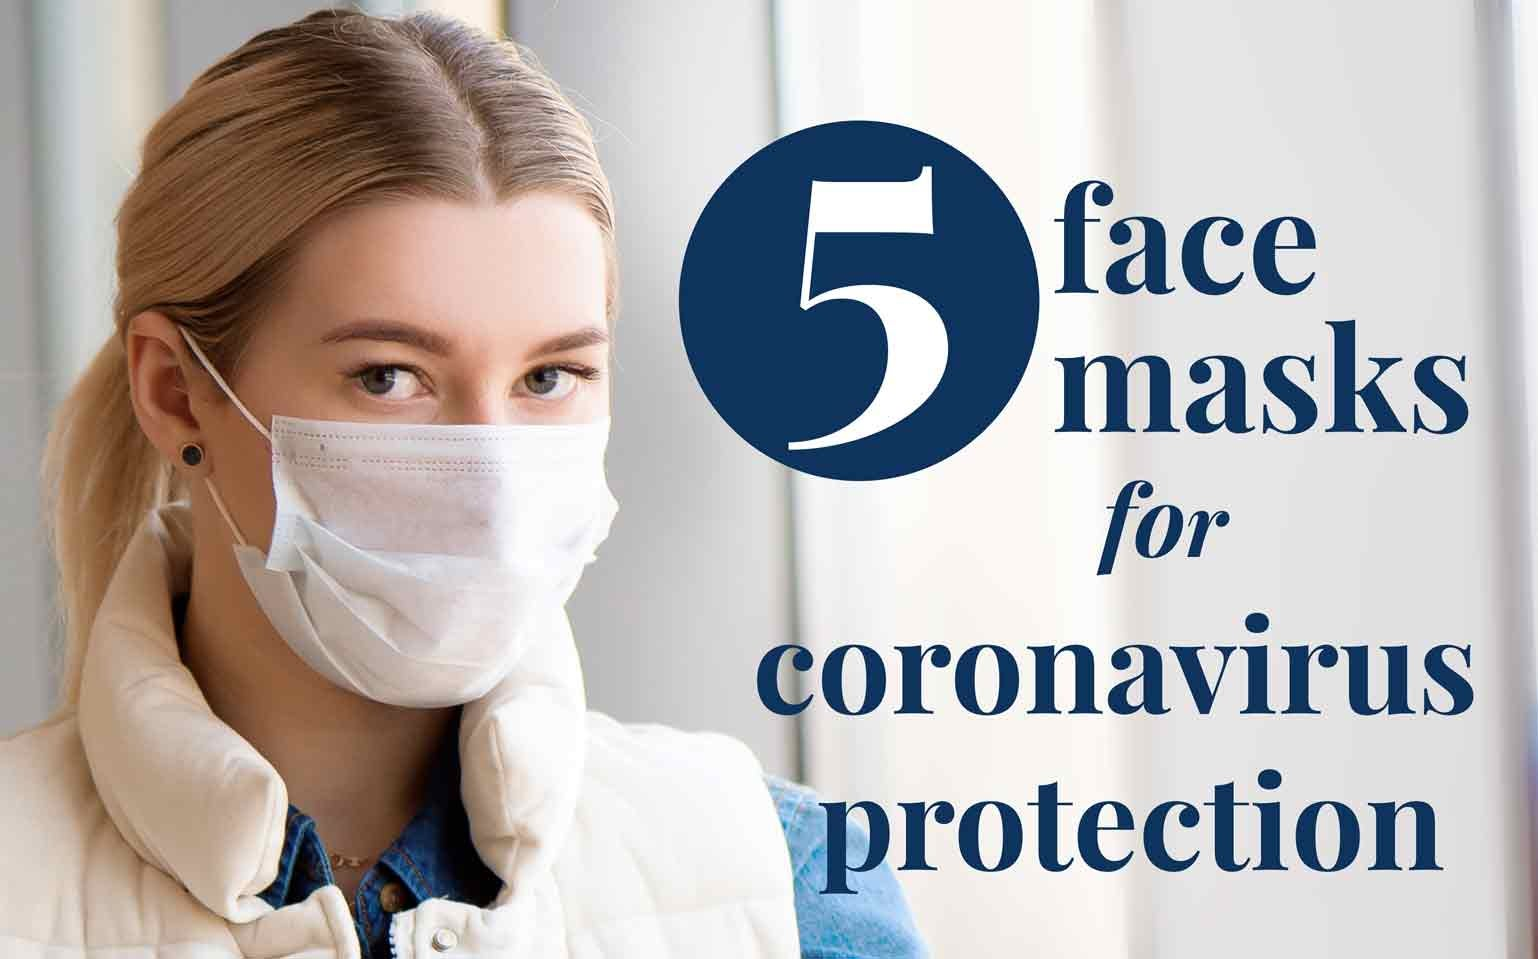 5 Best Face Masks for Coronavirus Protection | Surgical Masks for COVID-19